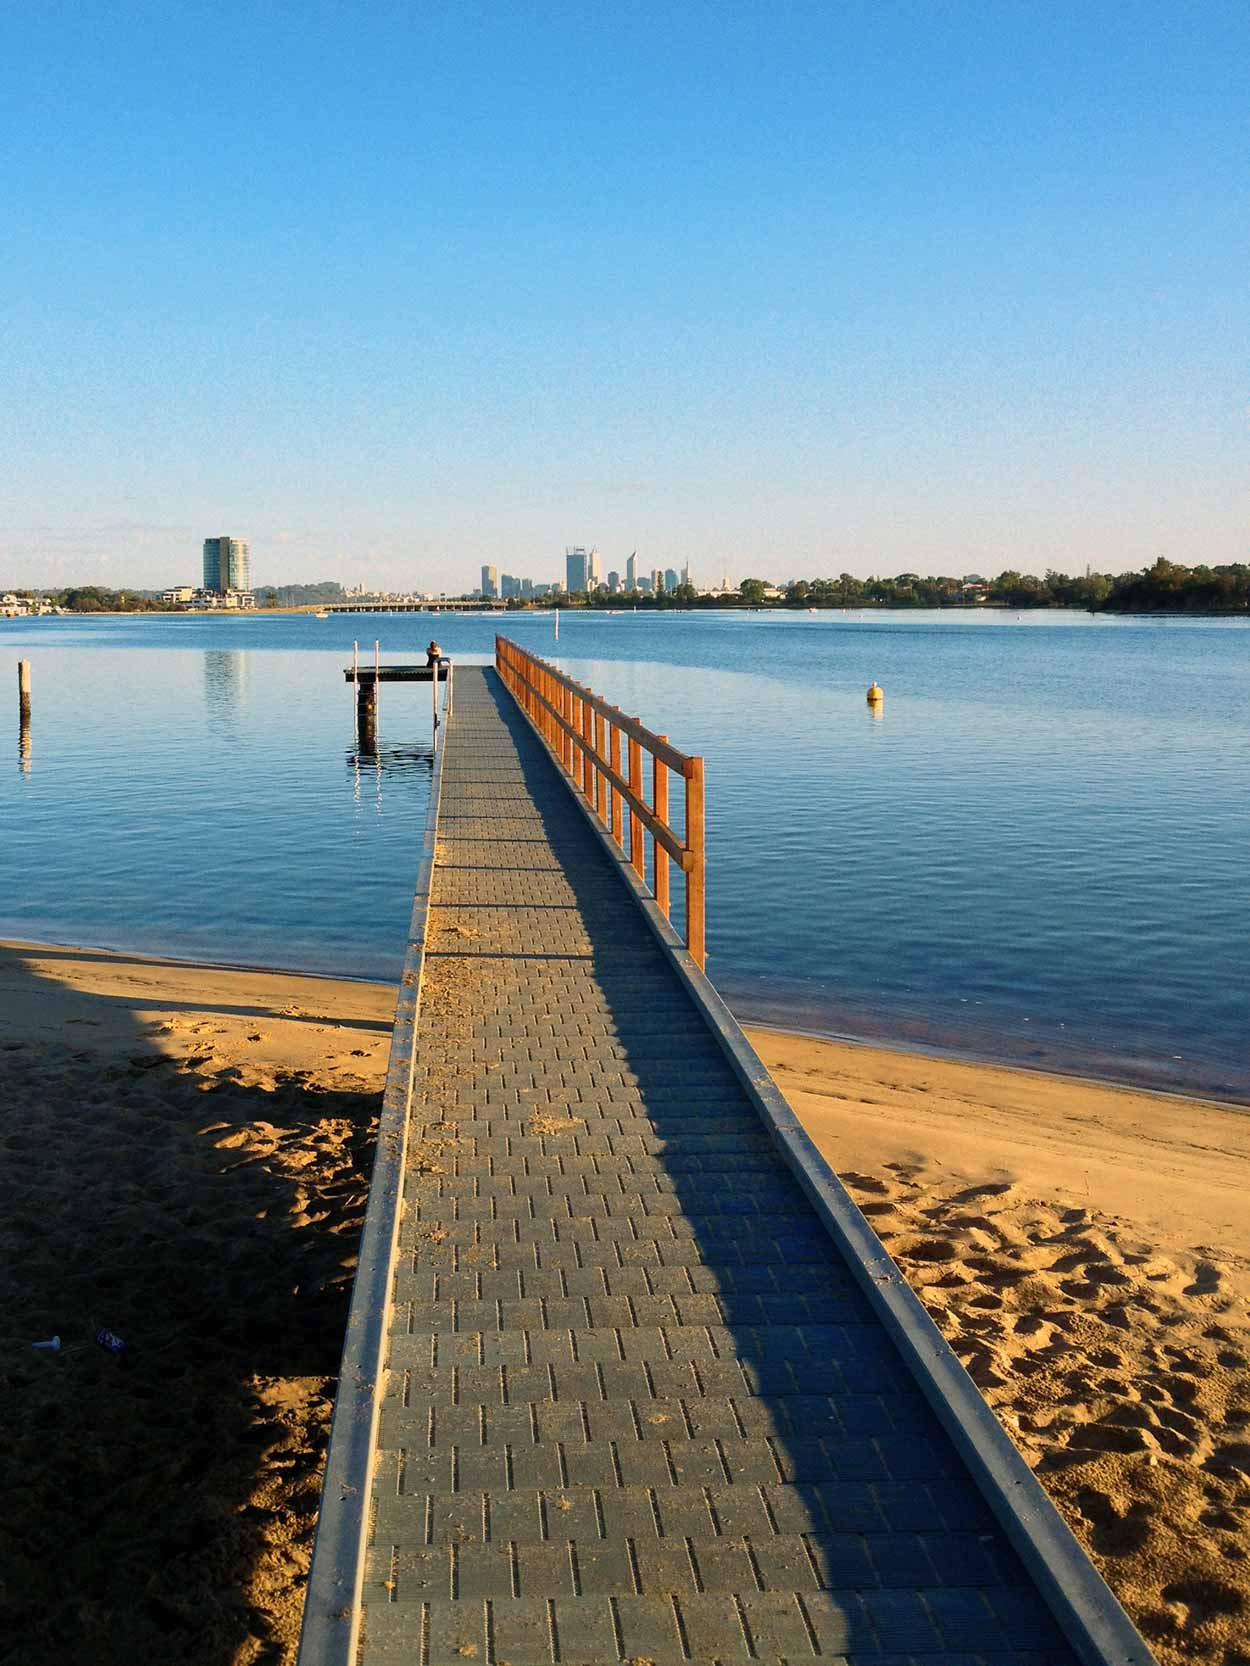 Looking north up the Canning River from Deep Water Point, Perth, Western Australia